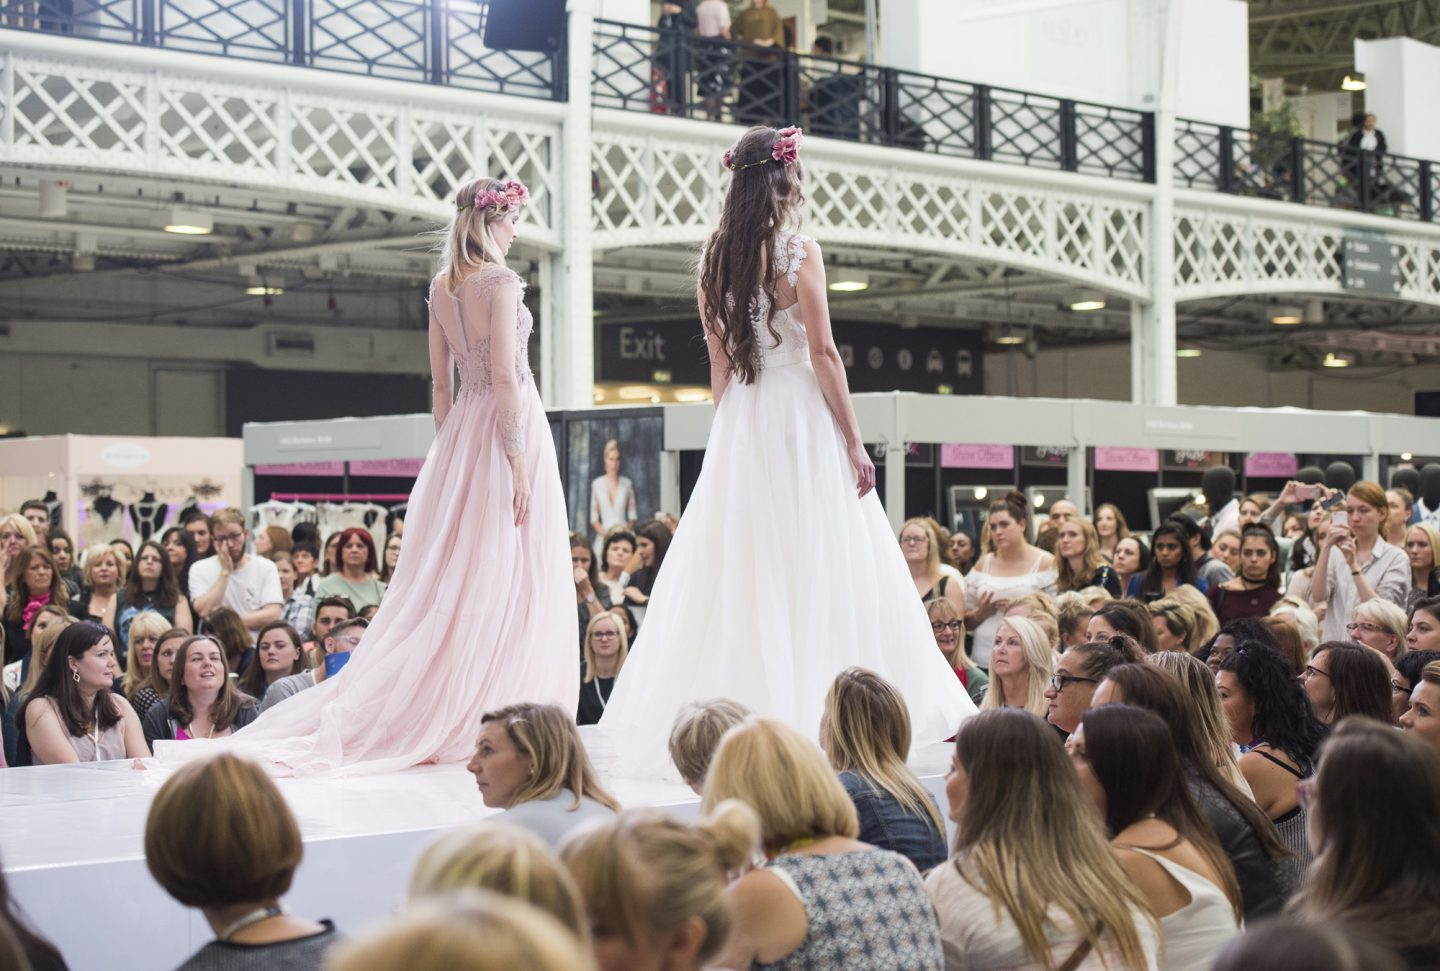 Win a pair of tickets to The National Wedding Show at EventCity, Manchester